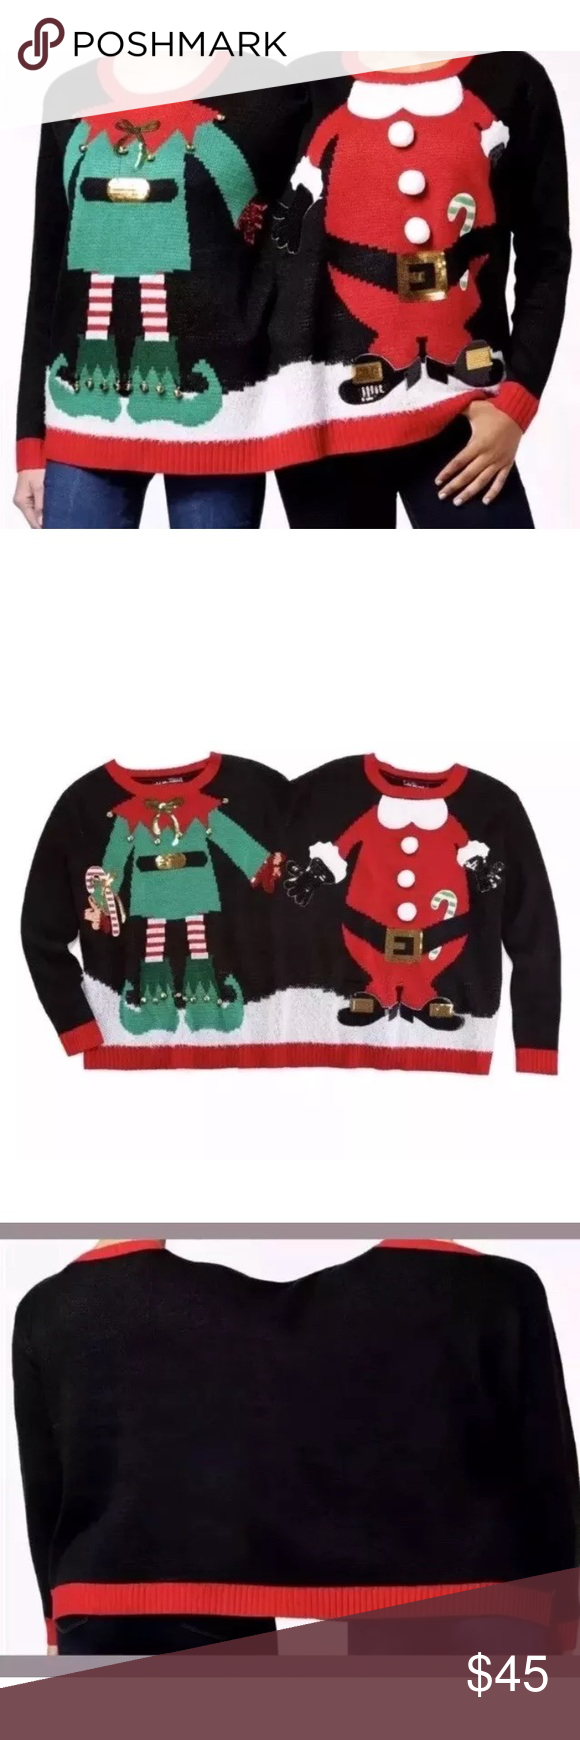 2 Person Ugly Christmas Sweater Nwt My Posh Picks Pinterest